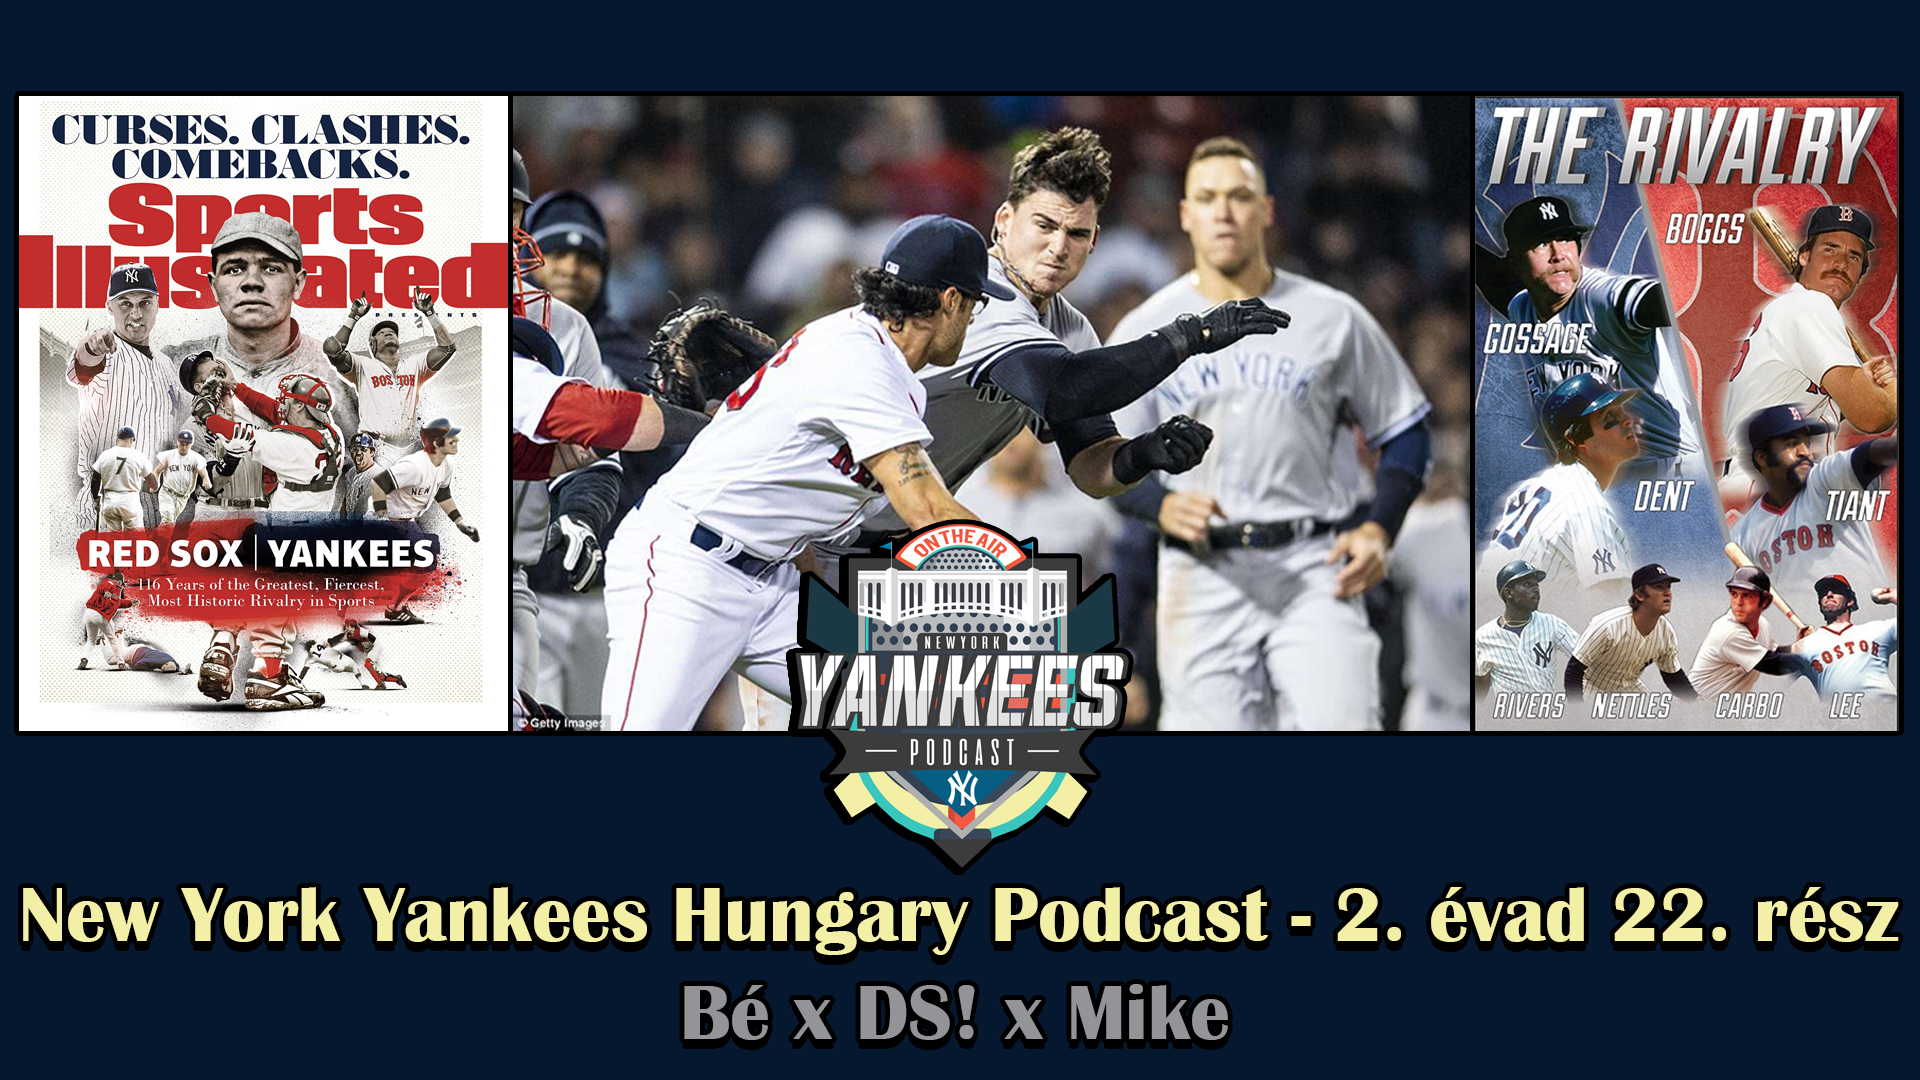 background_s02ep21_yankees_vs_red_sox_the_rivalry.jpg